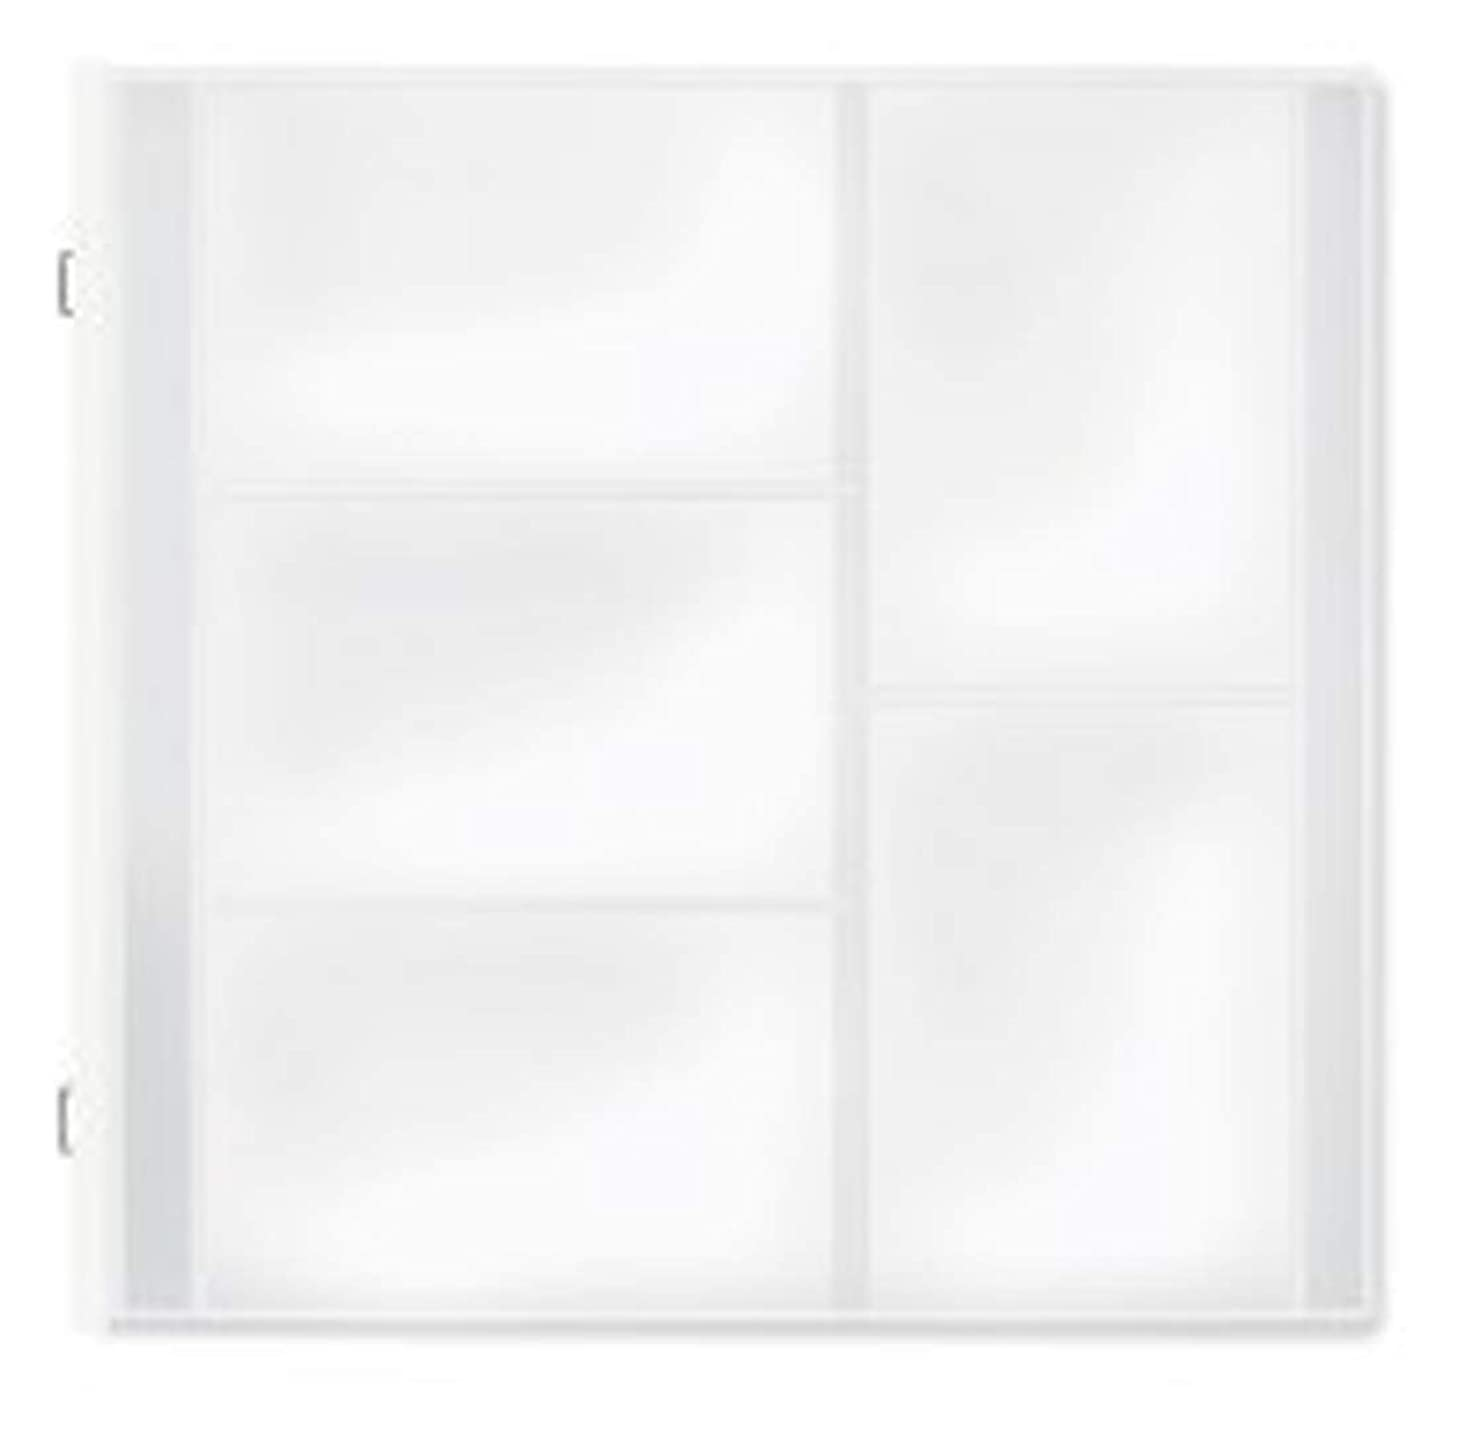 12x12 Multi-Pocket Pages (12/pk) by Creative Memories